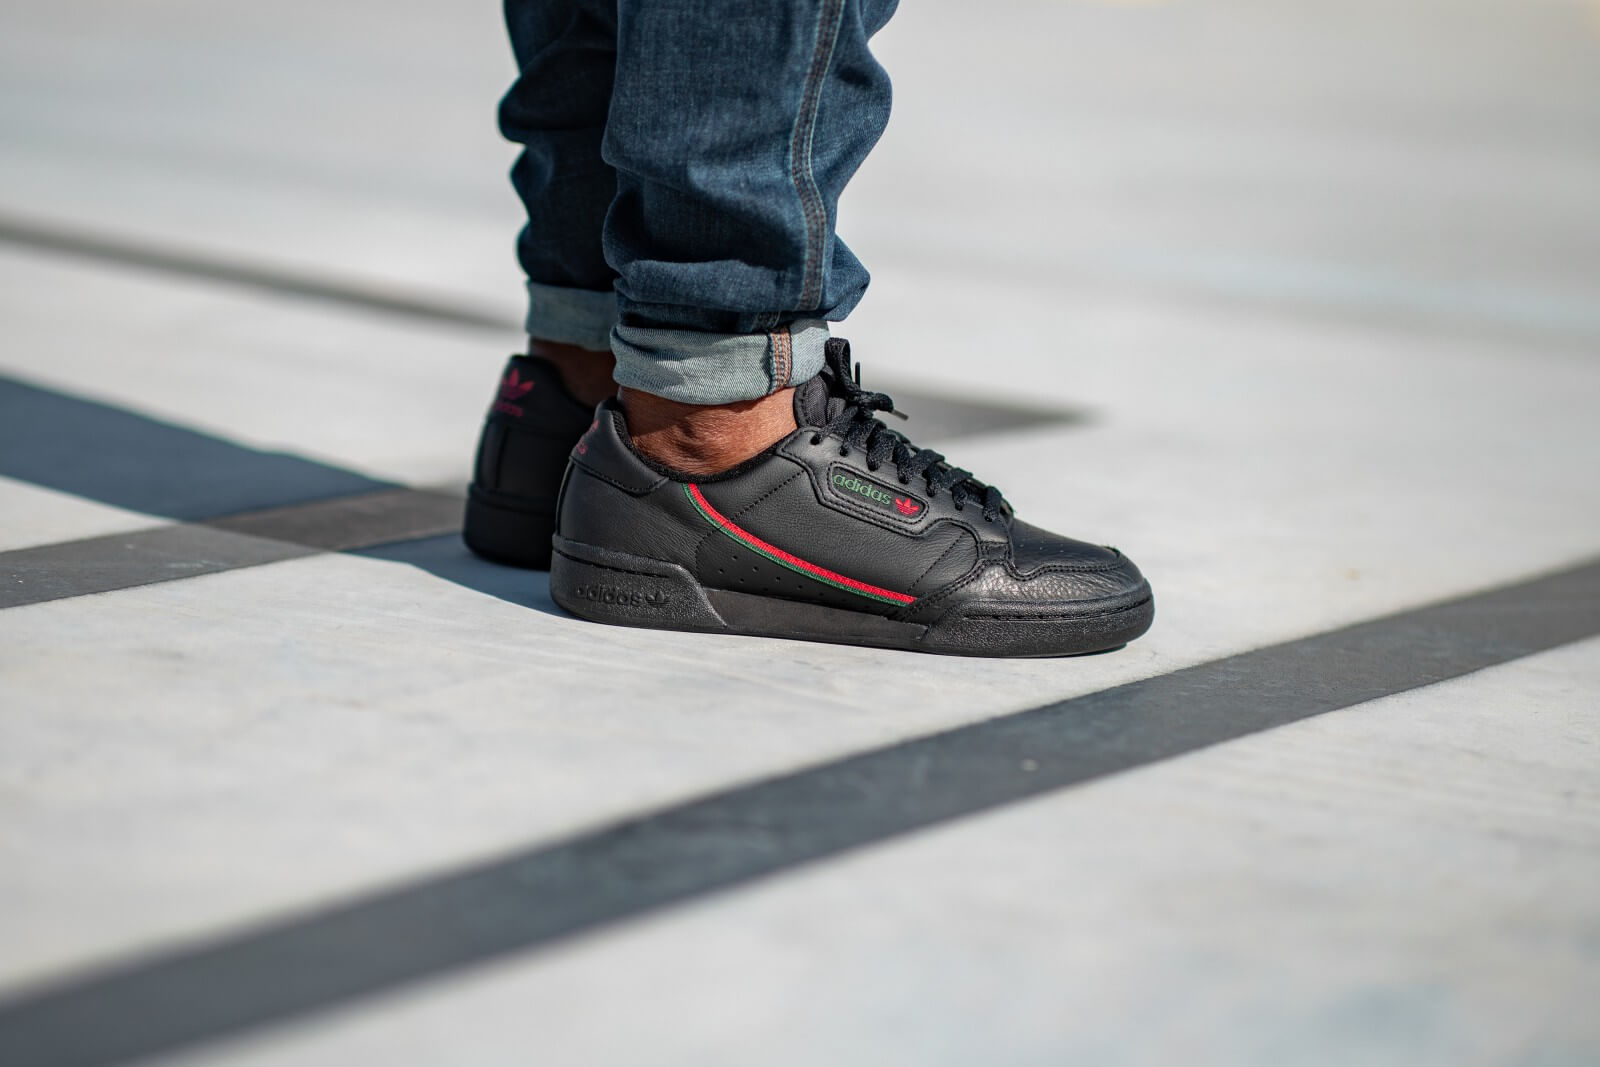 Adidas Continental 80 Core Black/Scarlet-Green - EE5343